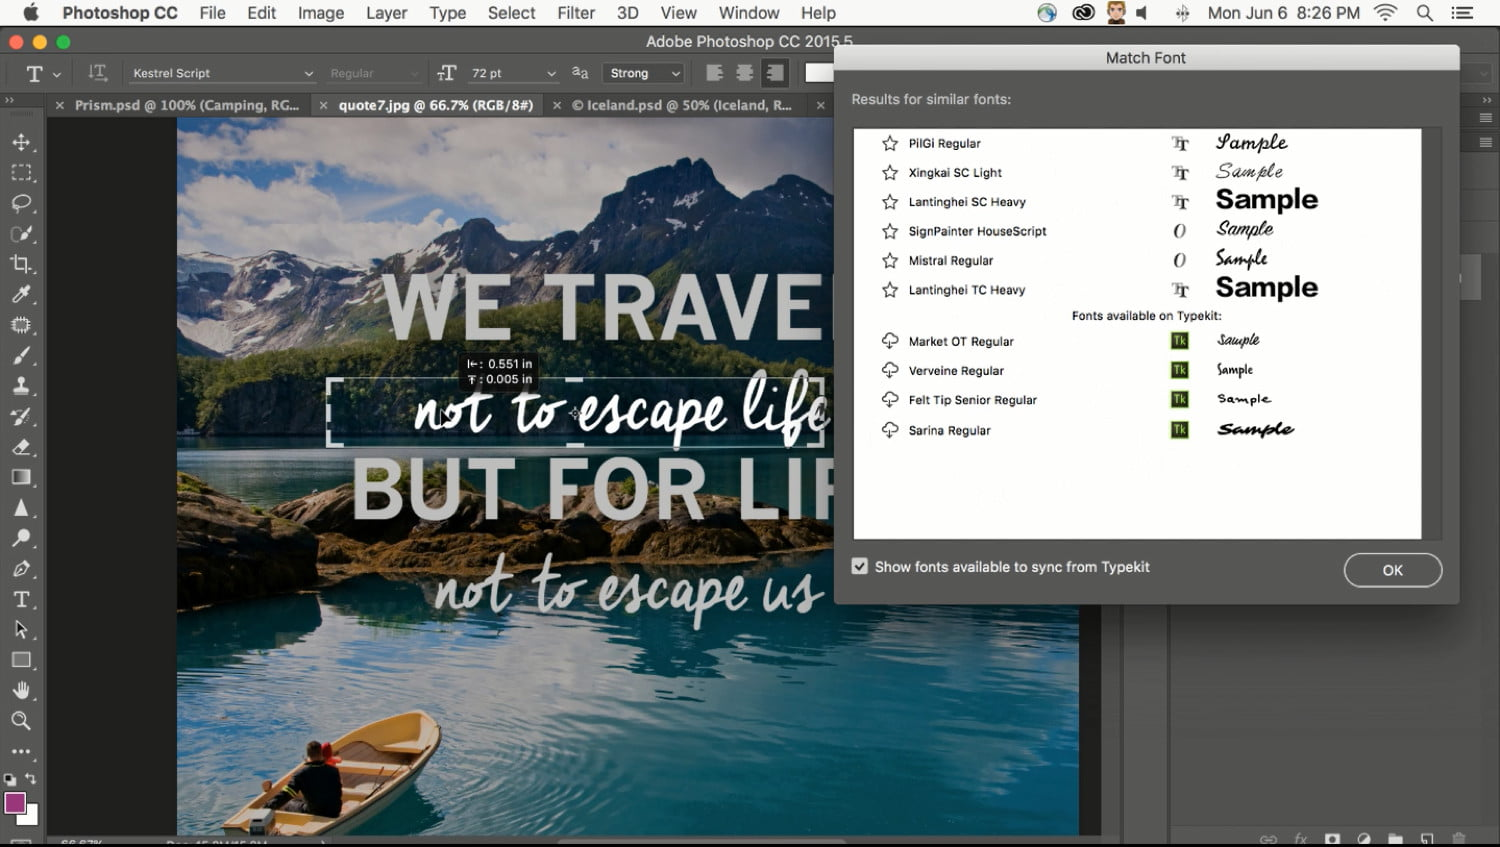 Adobe CC Update Brings New Features, Improves Performance | Digital